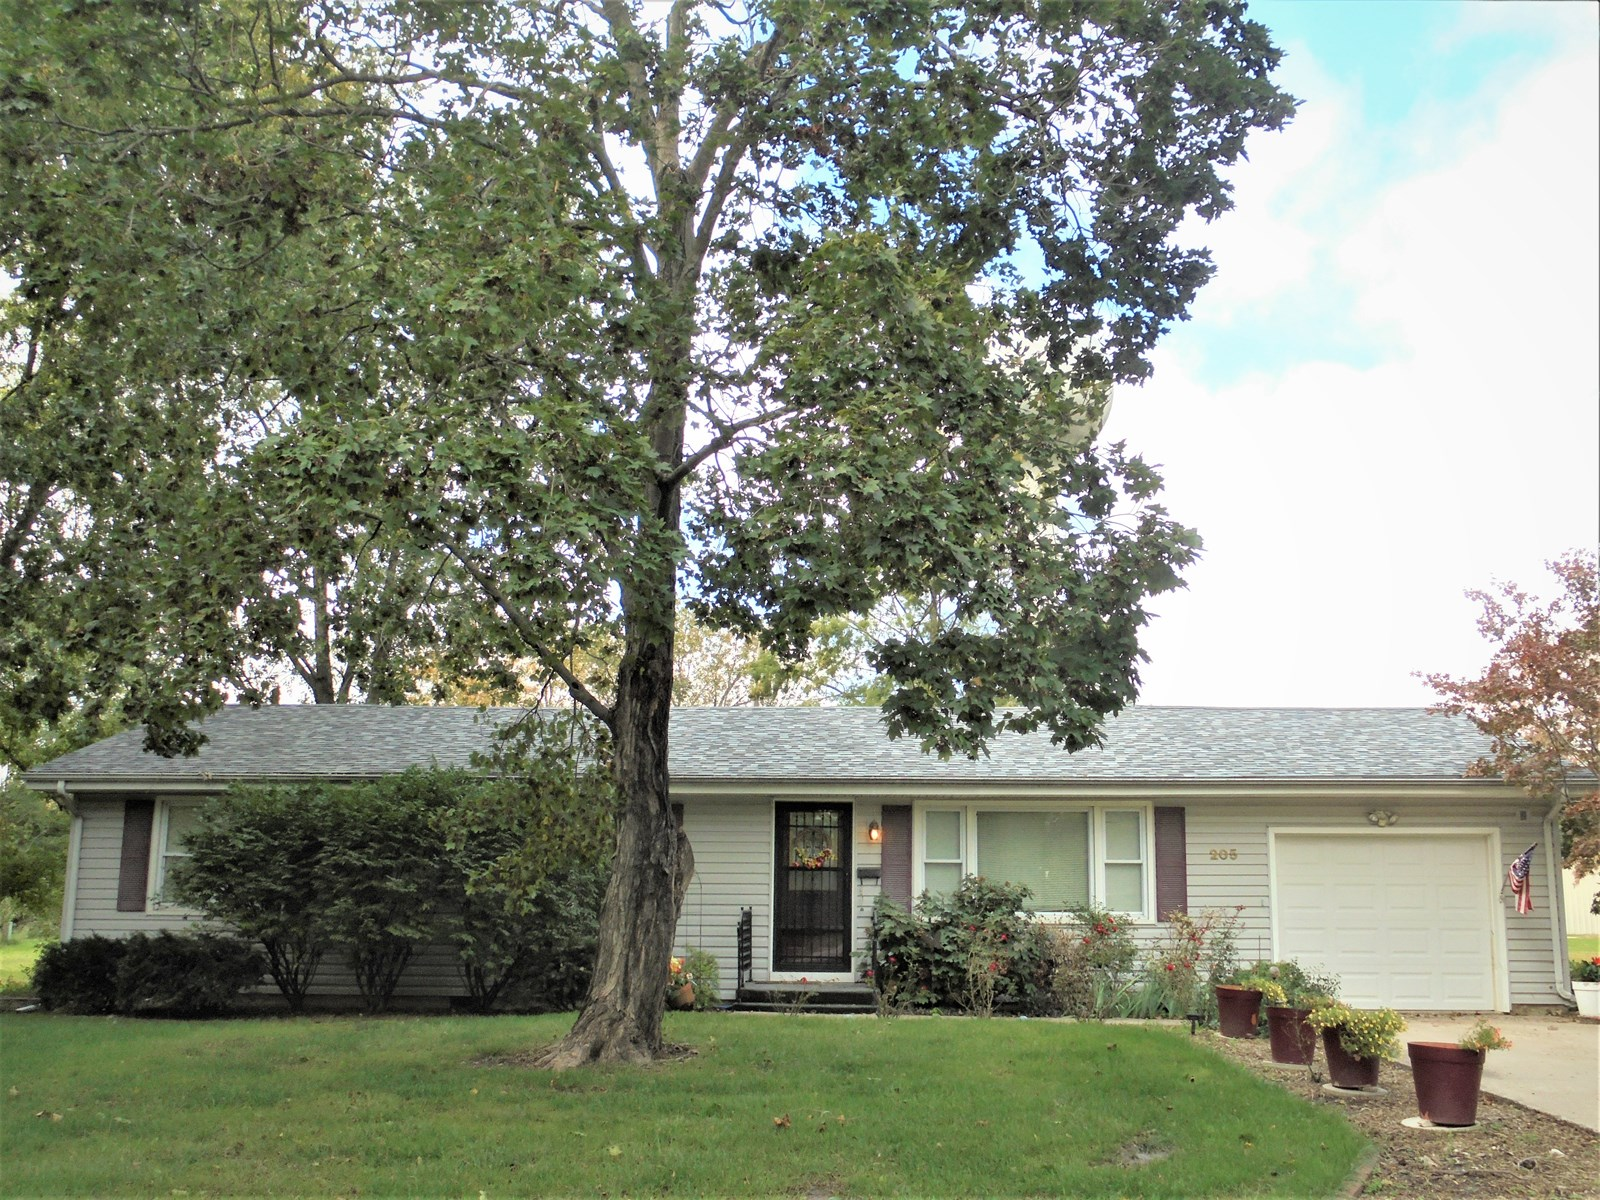 For Sale Ranch Home Large Building Minutes From Chillicothe!